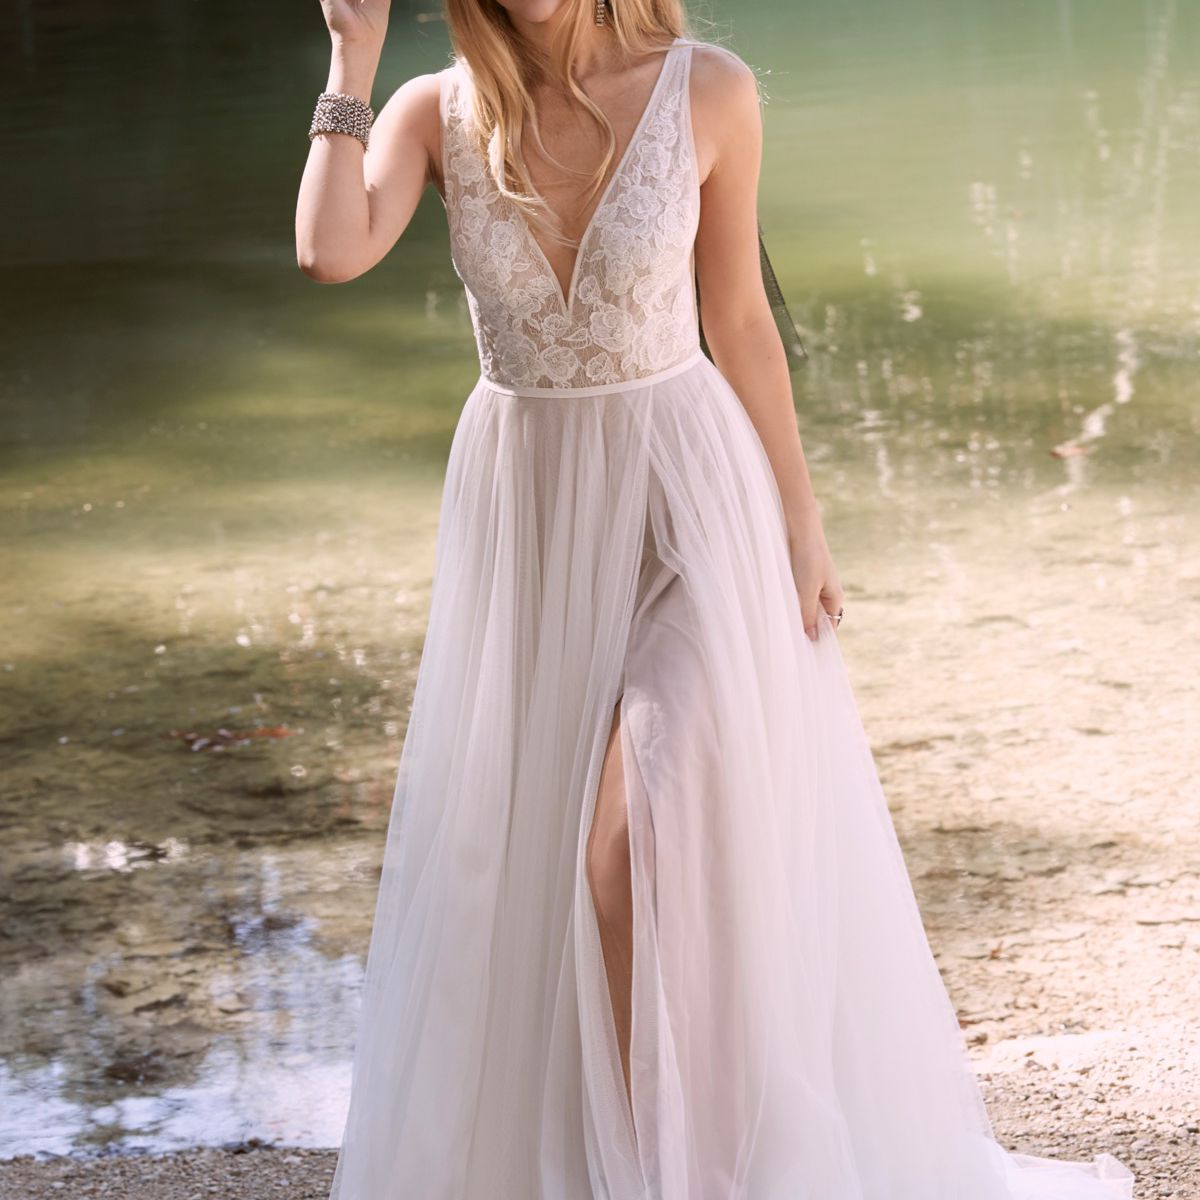 Model in V-neck gown with lace bodice and tulle skirt with front slit